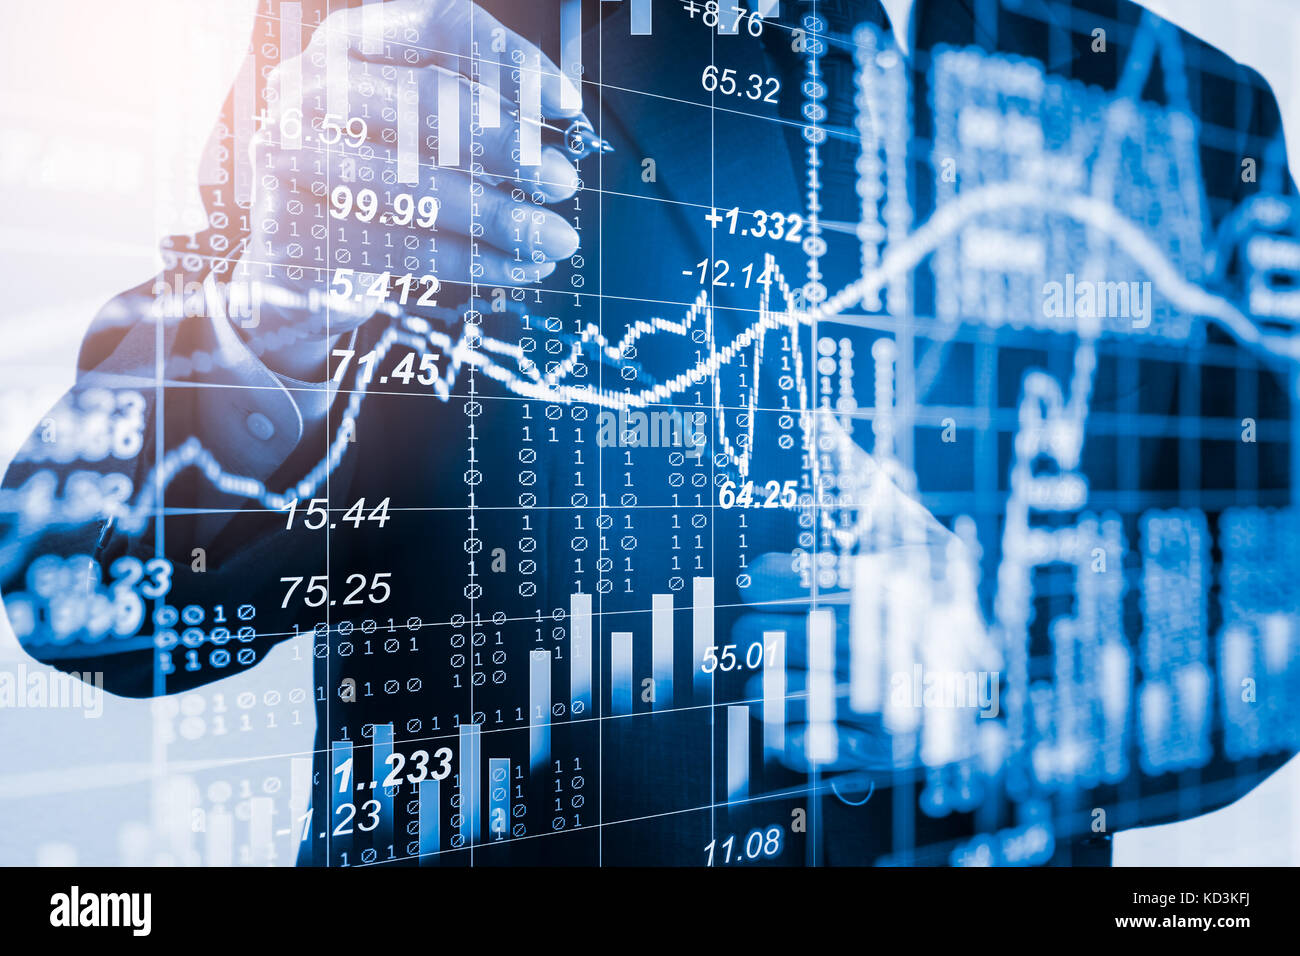 Yahoo Finance - Stock Market Live, Quotes, Business ... Fundamentals Explained